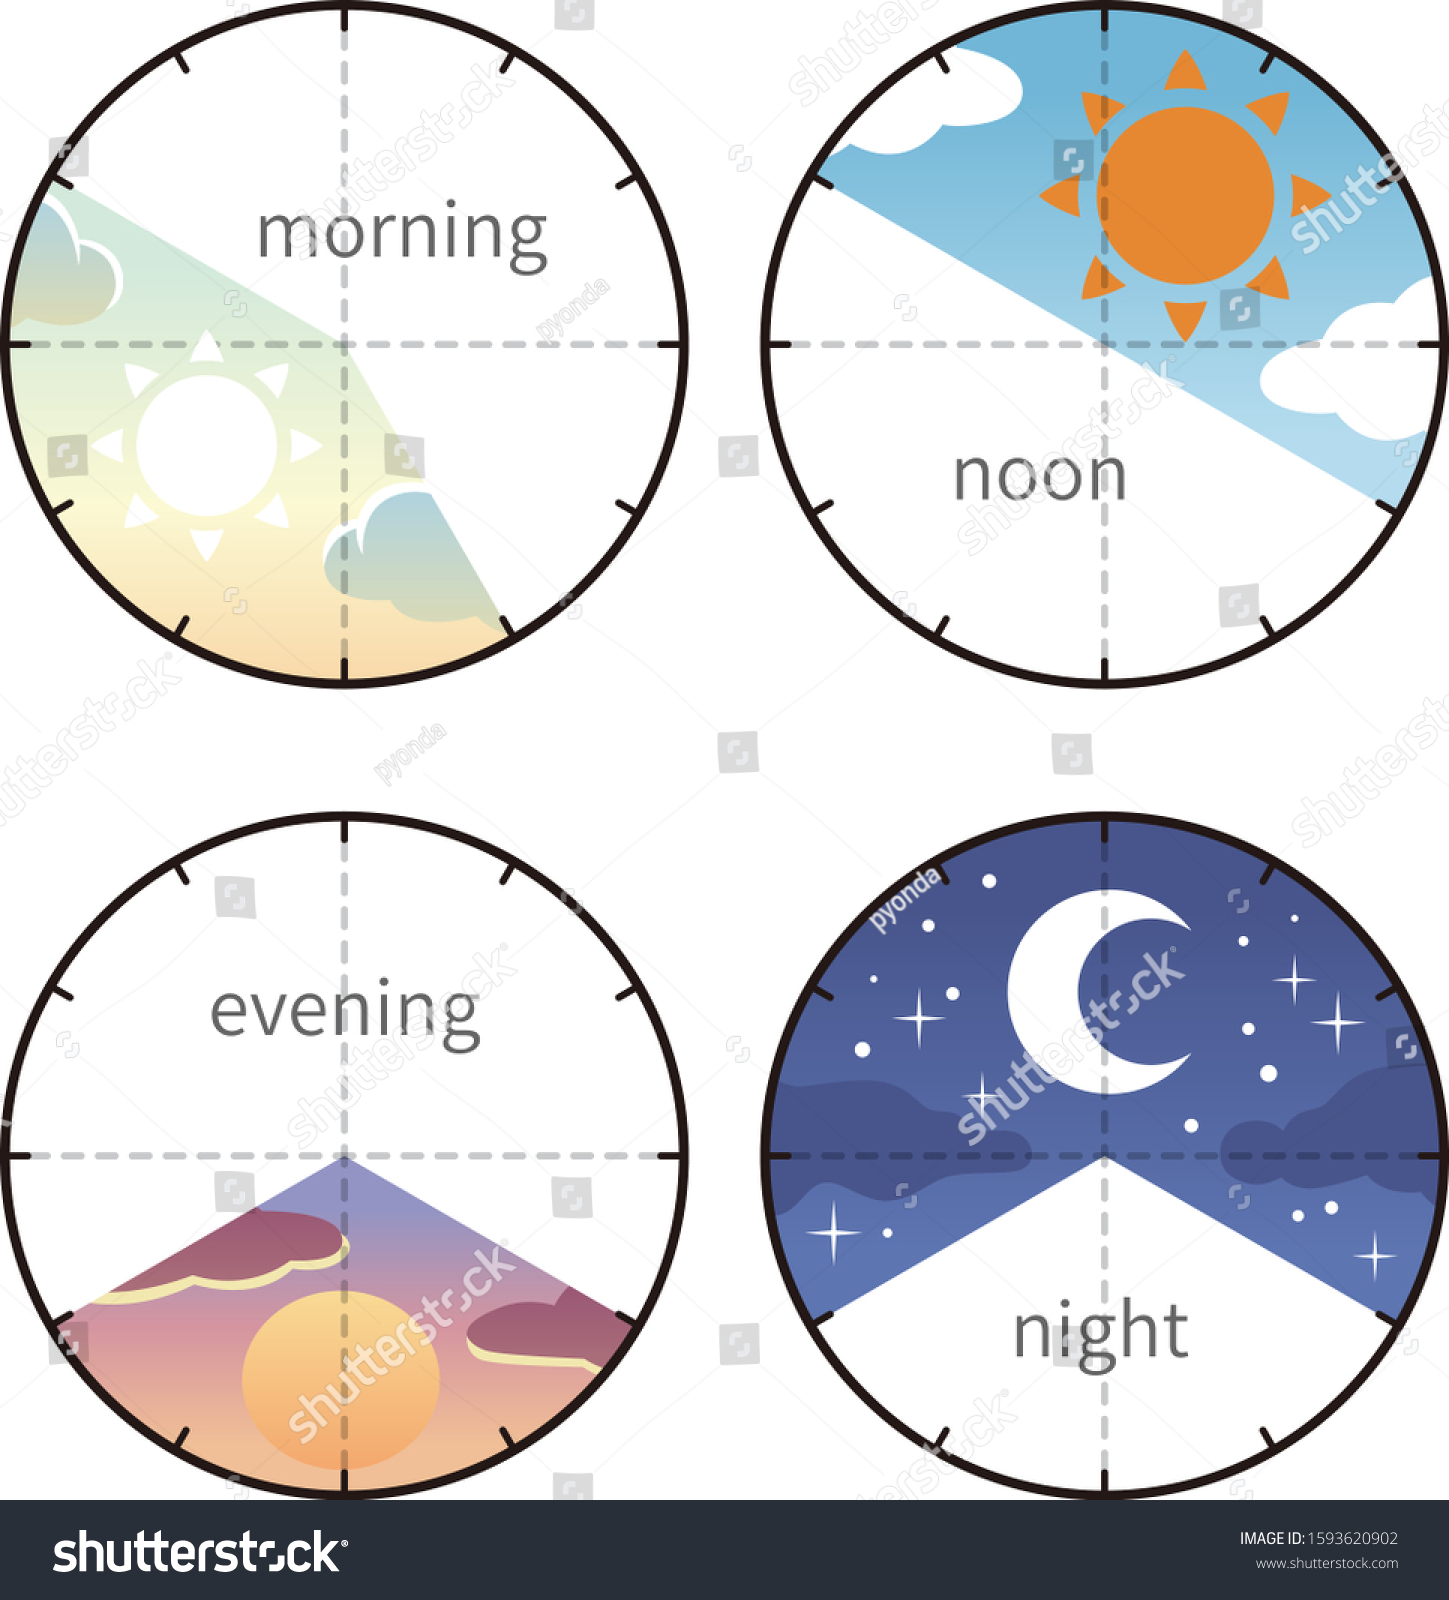 Morning, noon, evening, night time zone icons